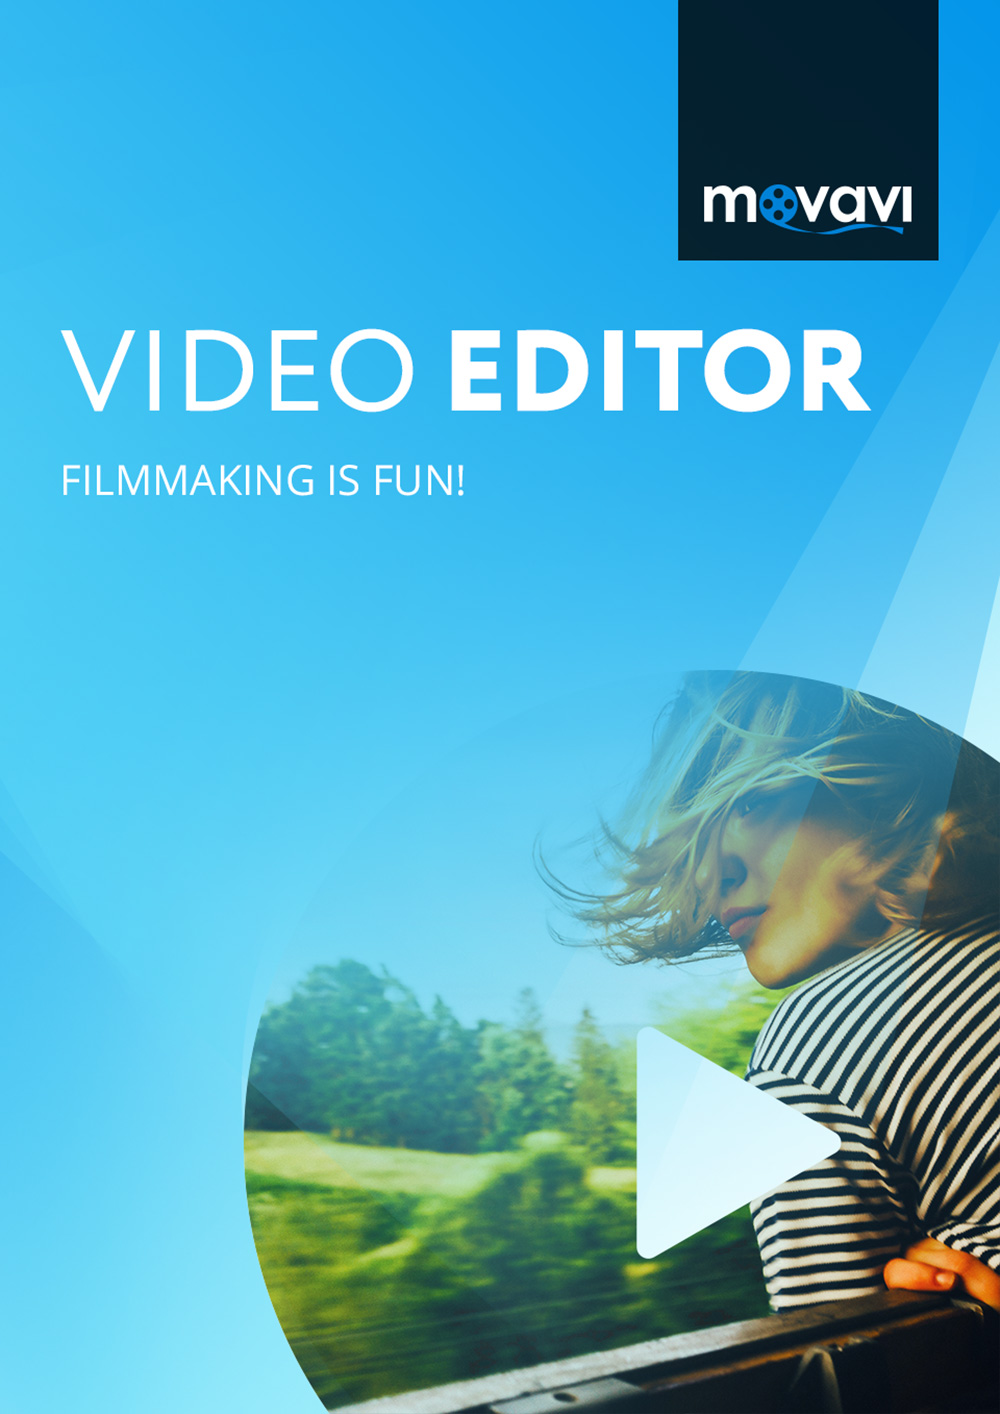 Movavi Video Editor 14 Personal Edition [Download] (Windows Video Editing Software)